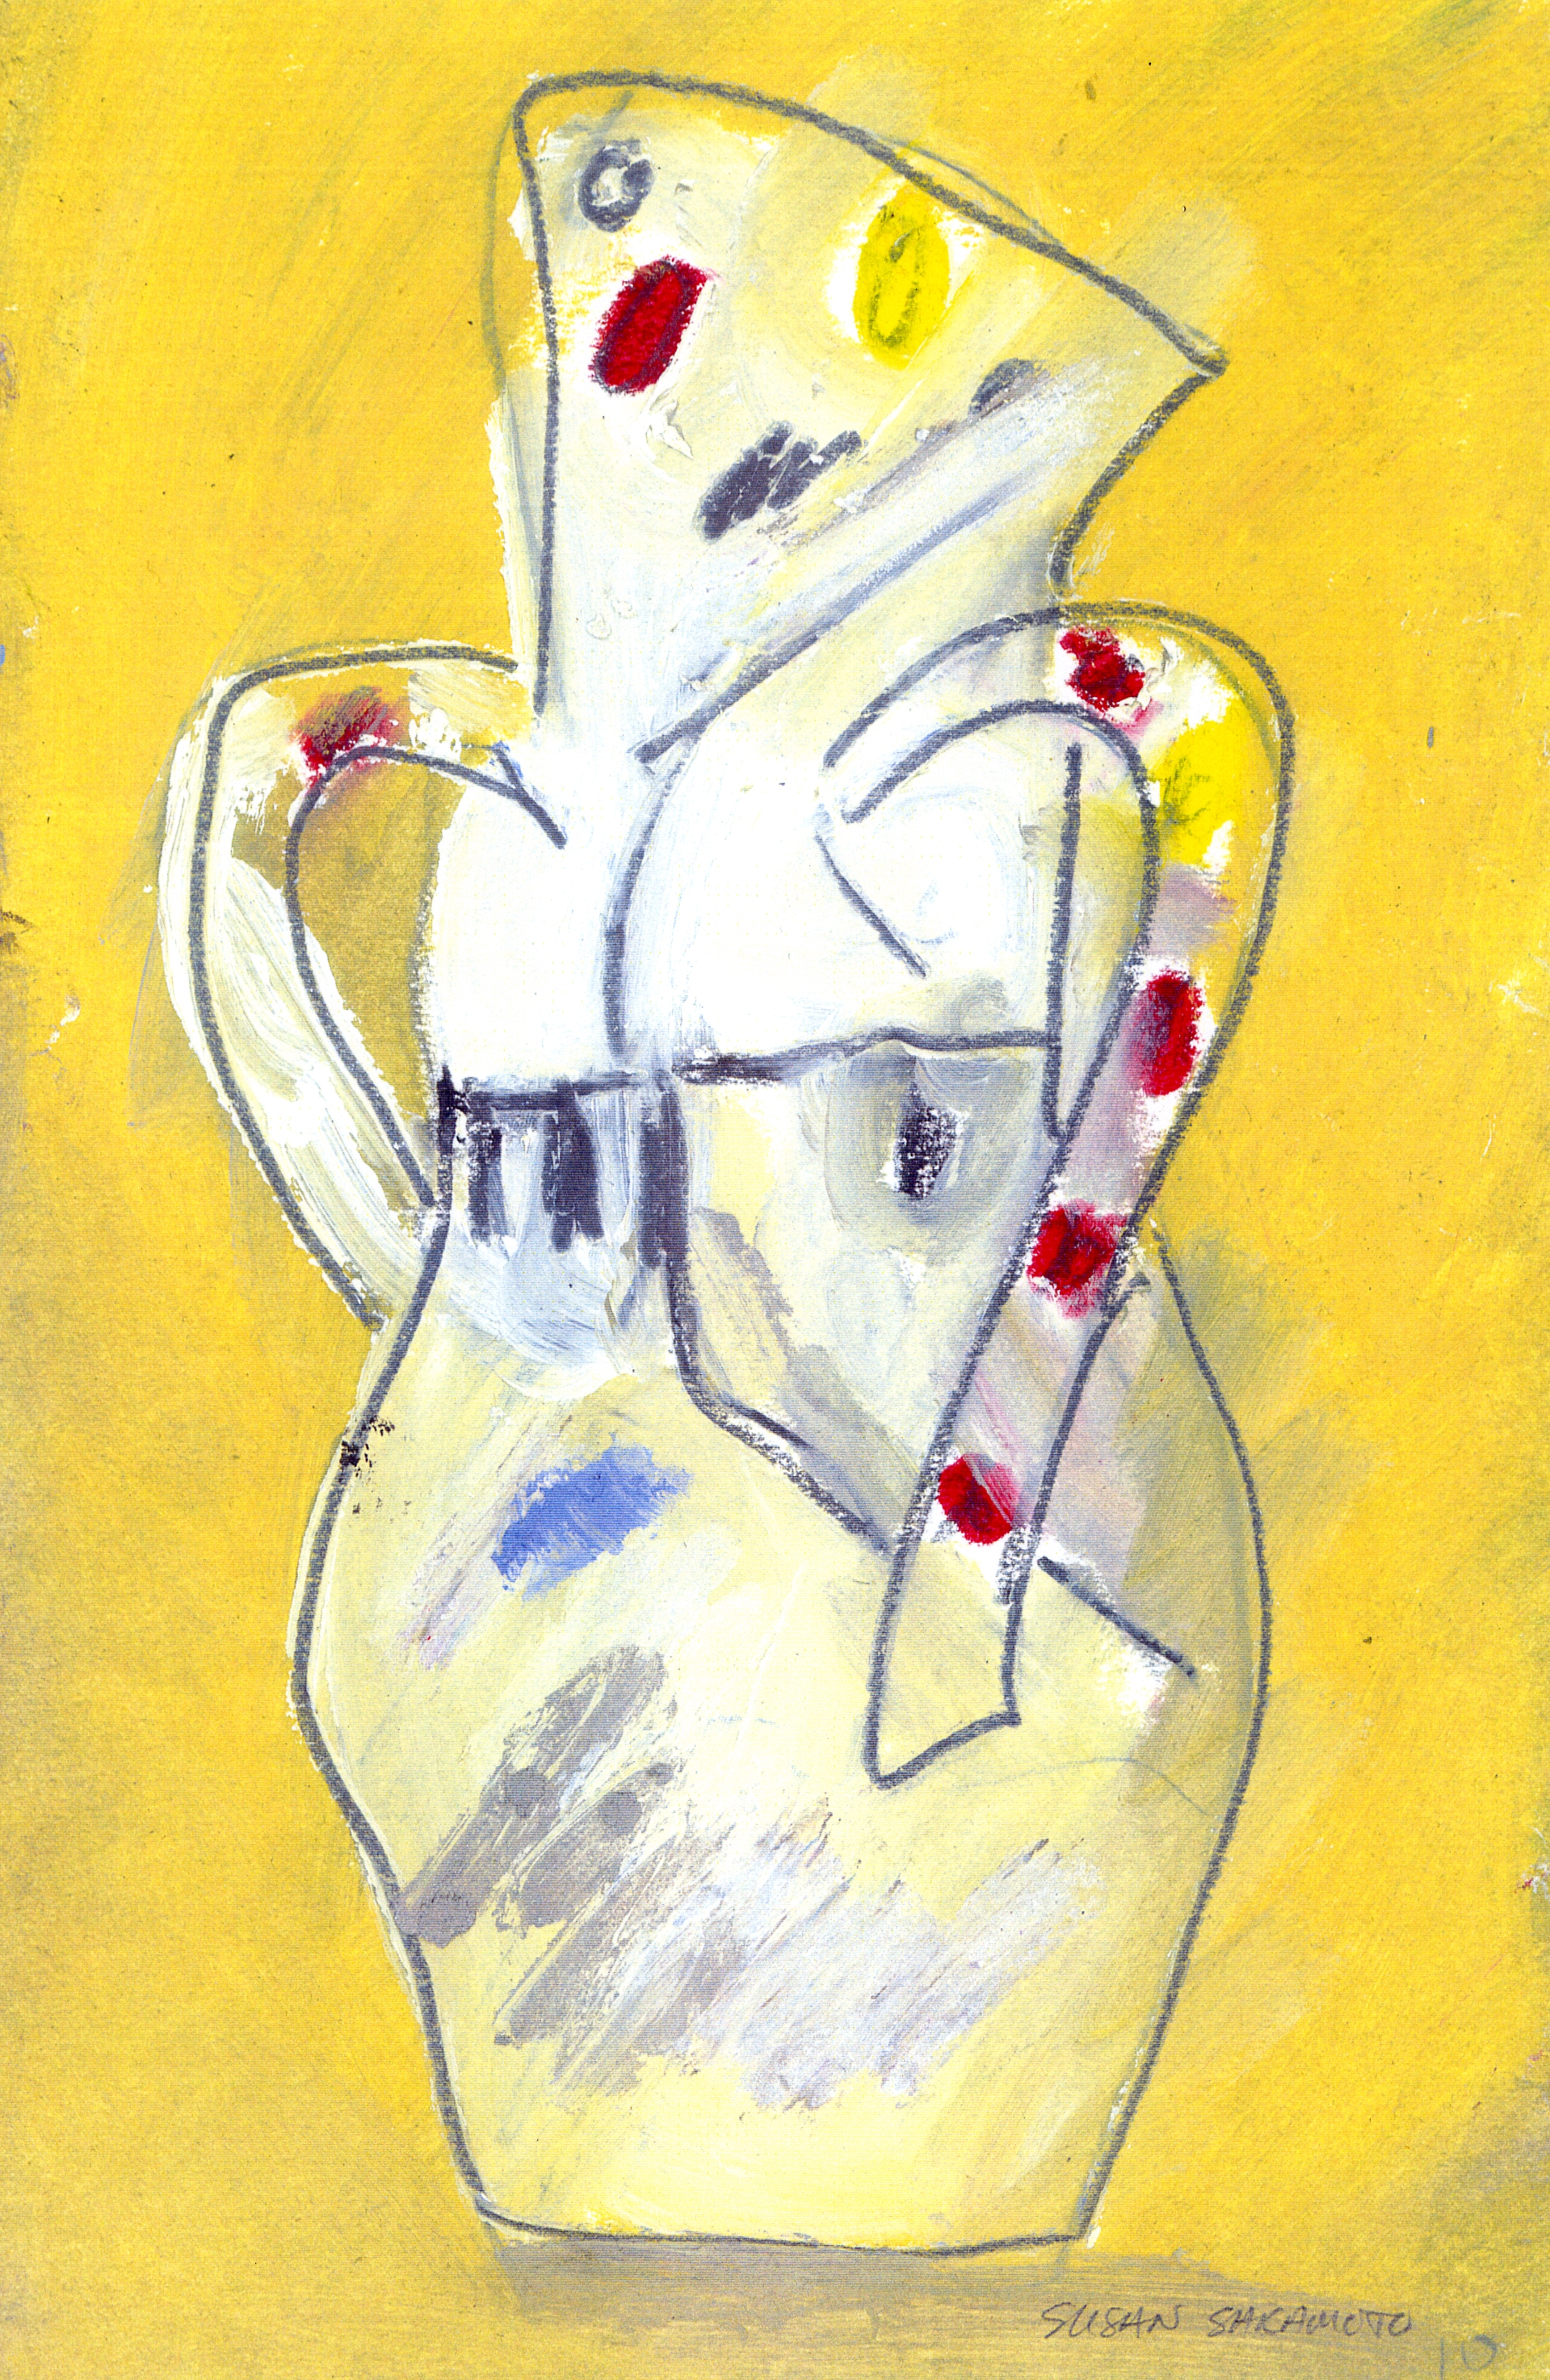 White Jug on Yellow001.jpg